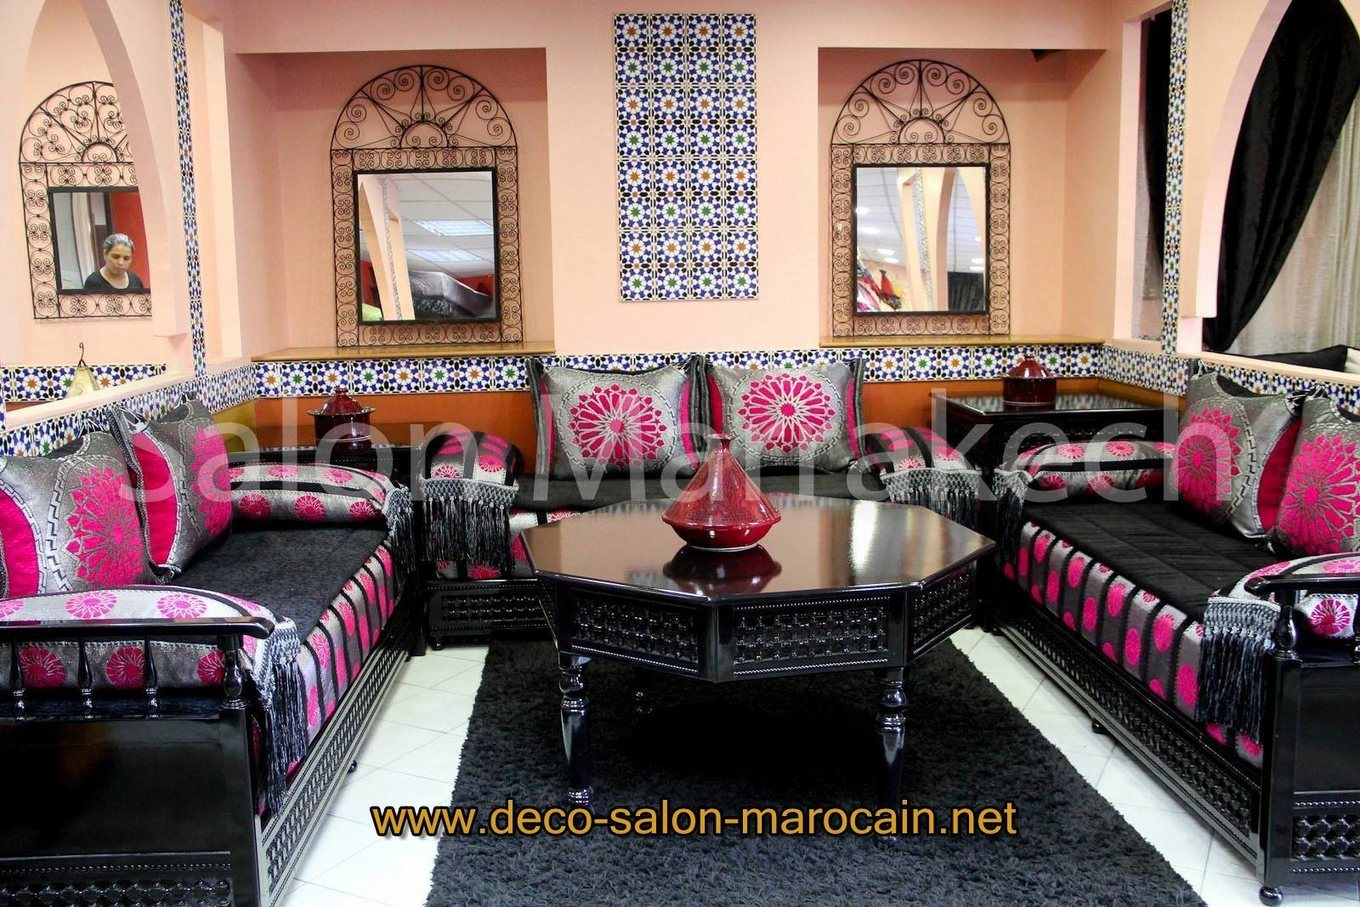 salon marocain bois noir design moderne dueac with salon marocain noir et argent. Black Bedroom Furniture Sets. Home Design Ideas